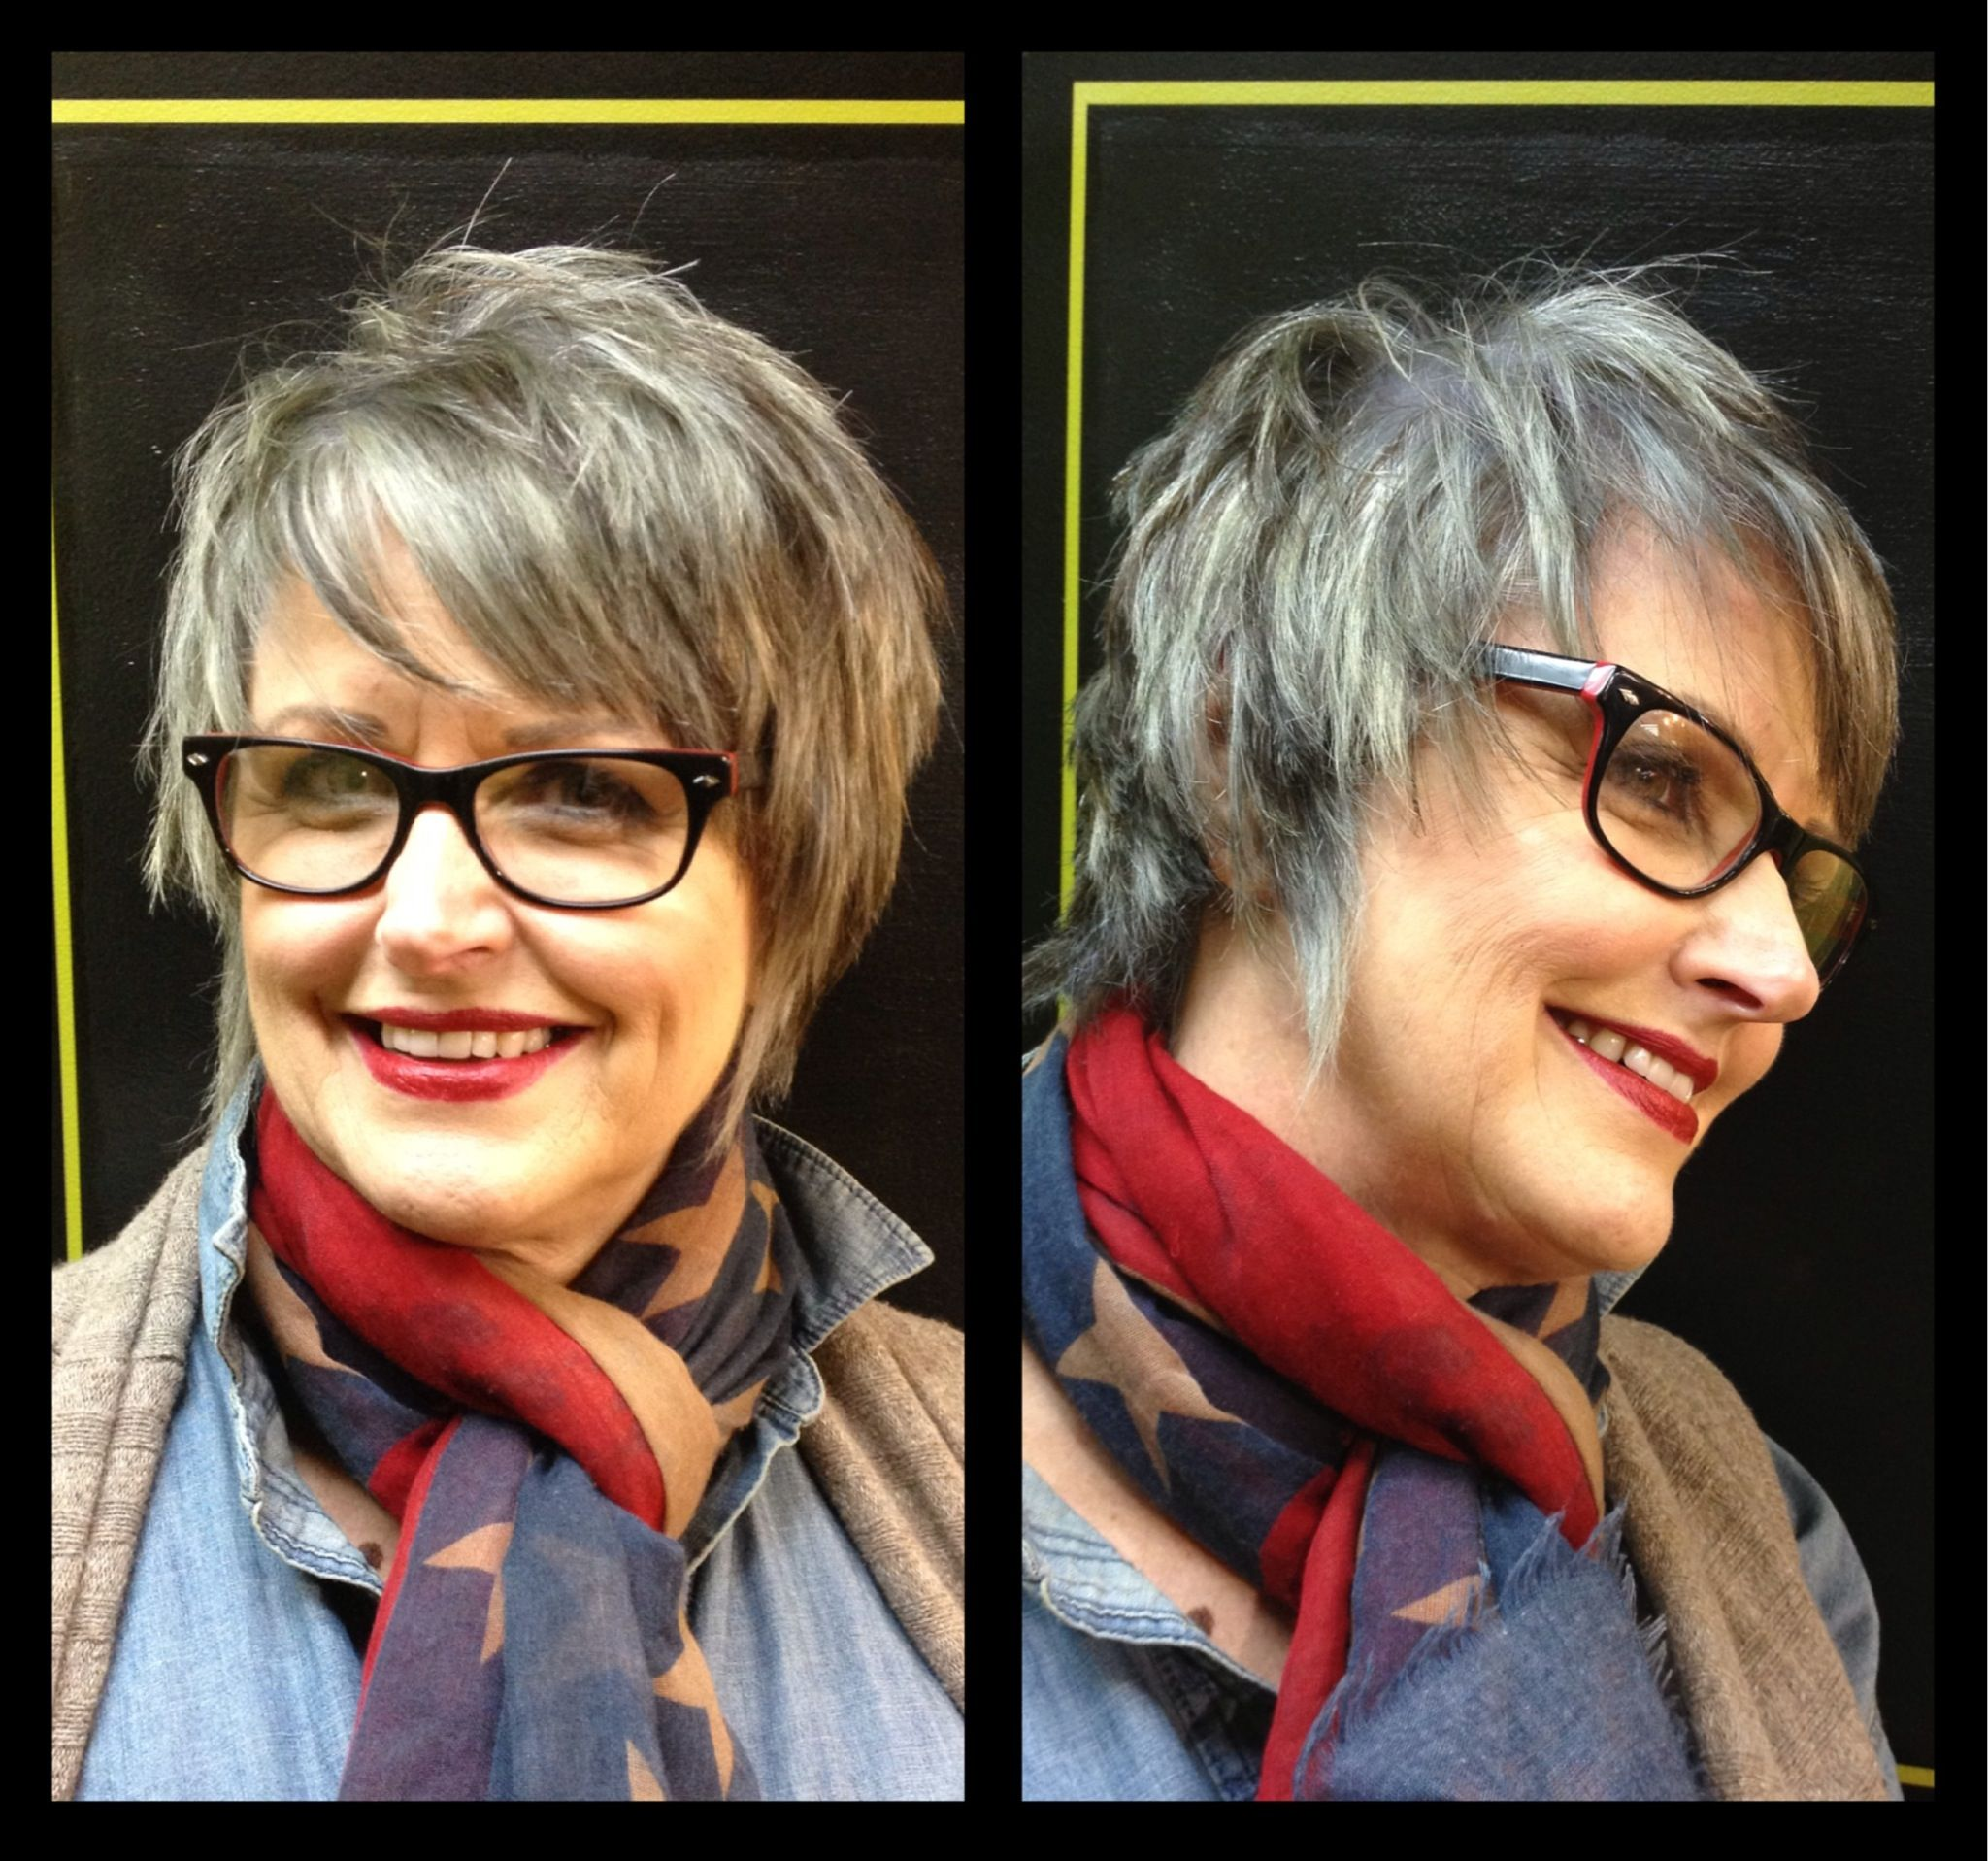 Short edgy haircut - Growing out gray - White hair - Haircut and